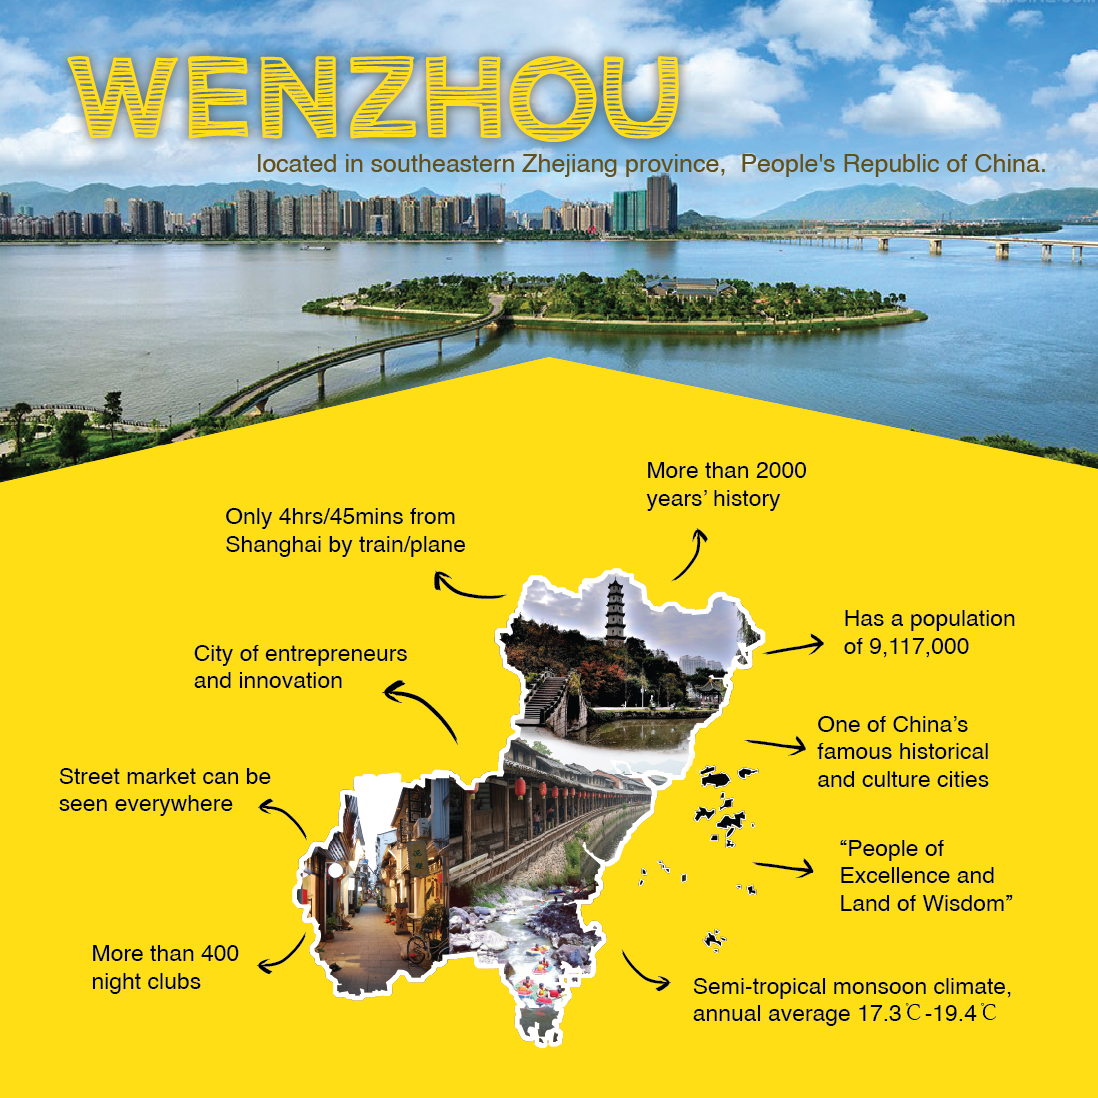 life in wenzhou-01